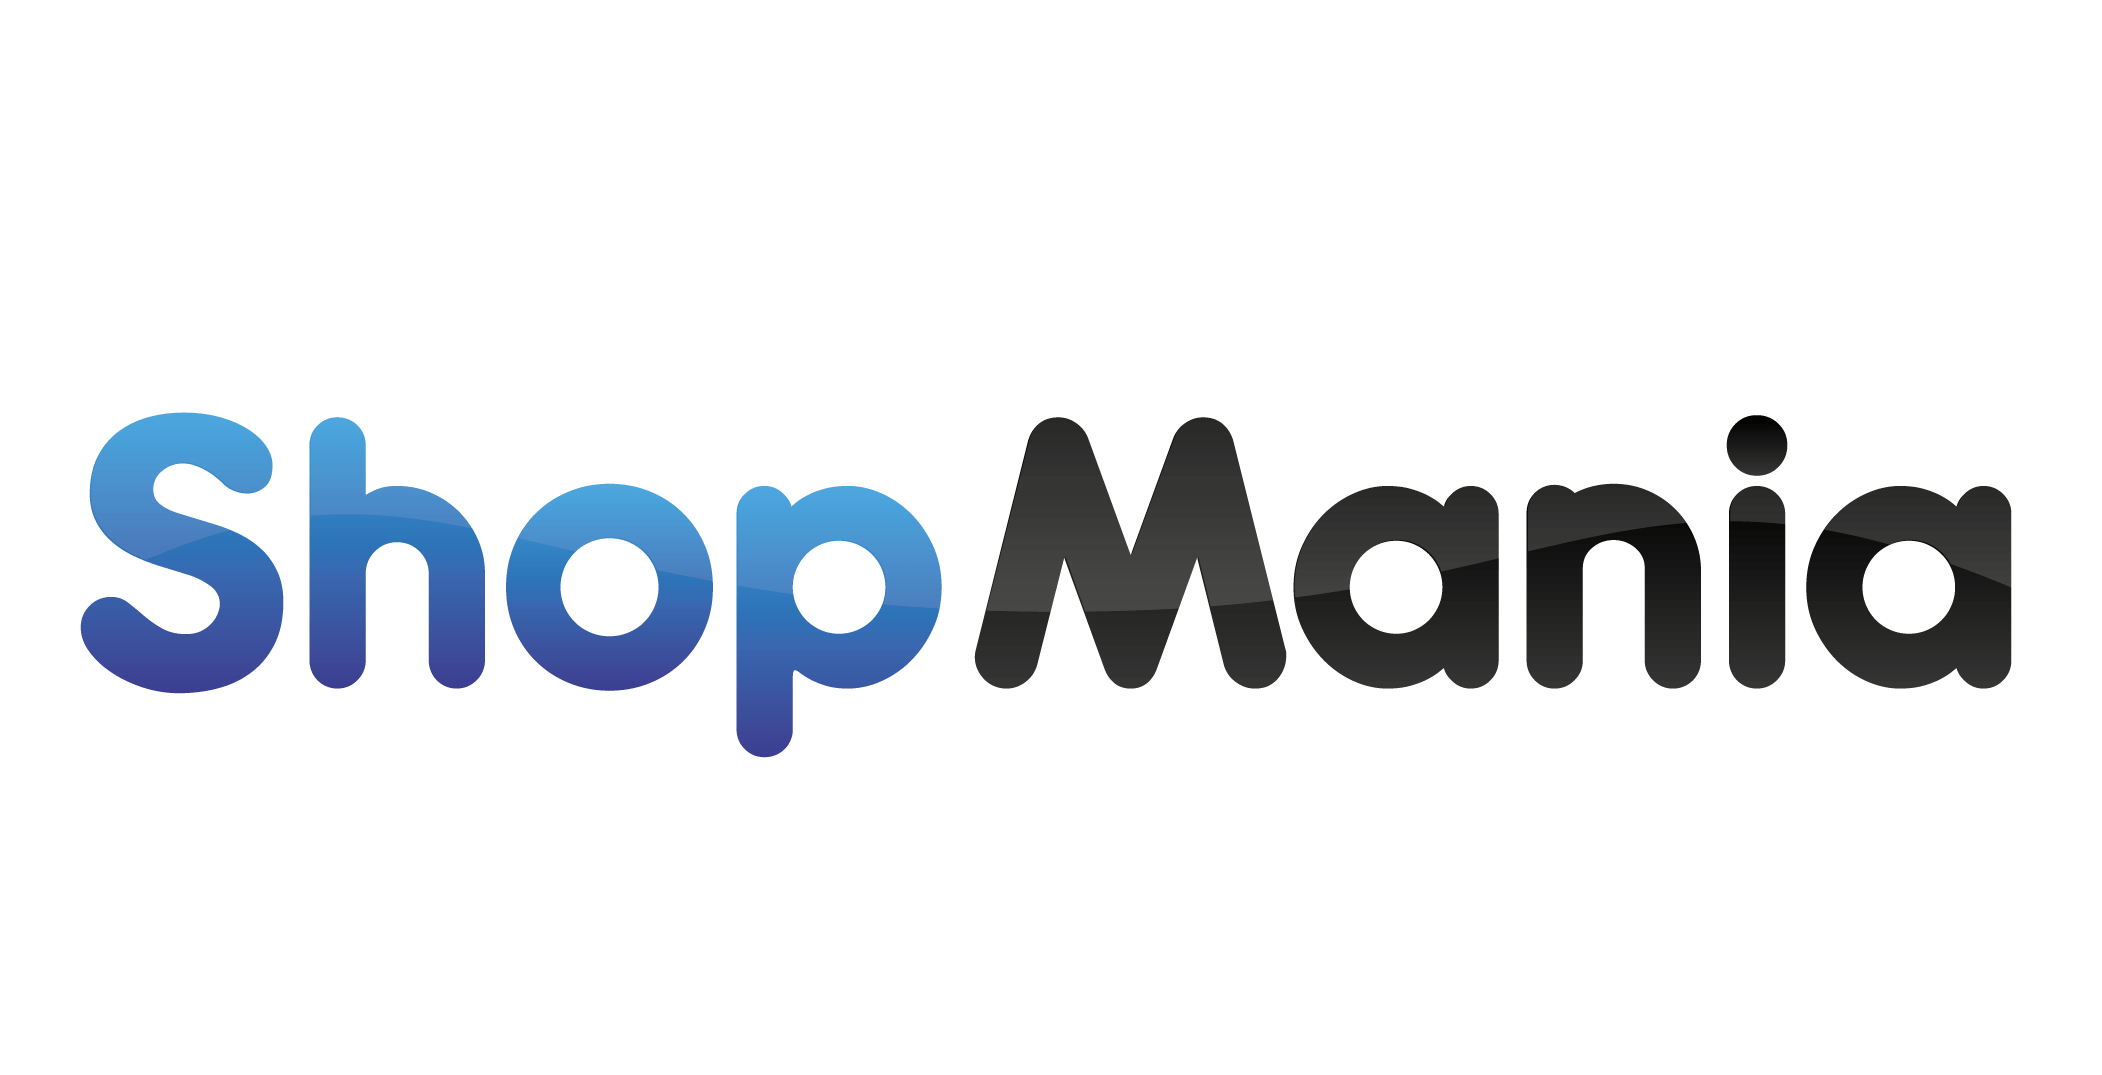 Buy Now: Shopmania